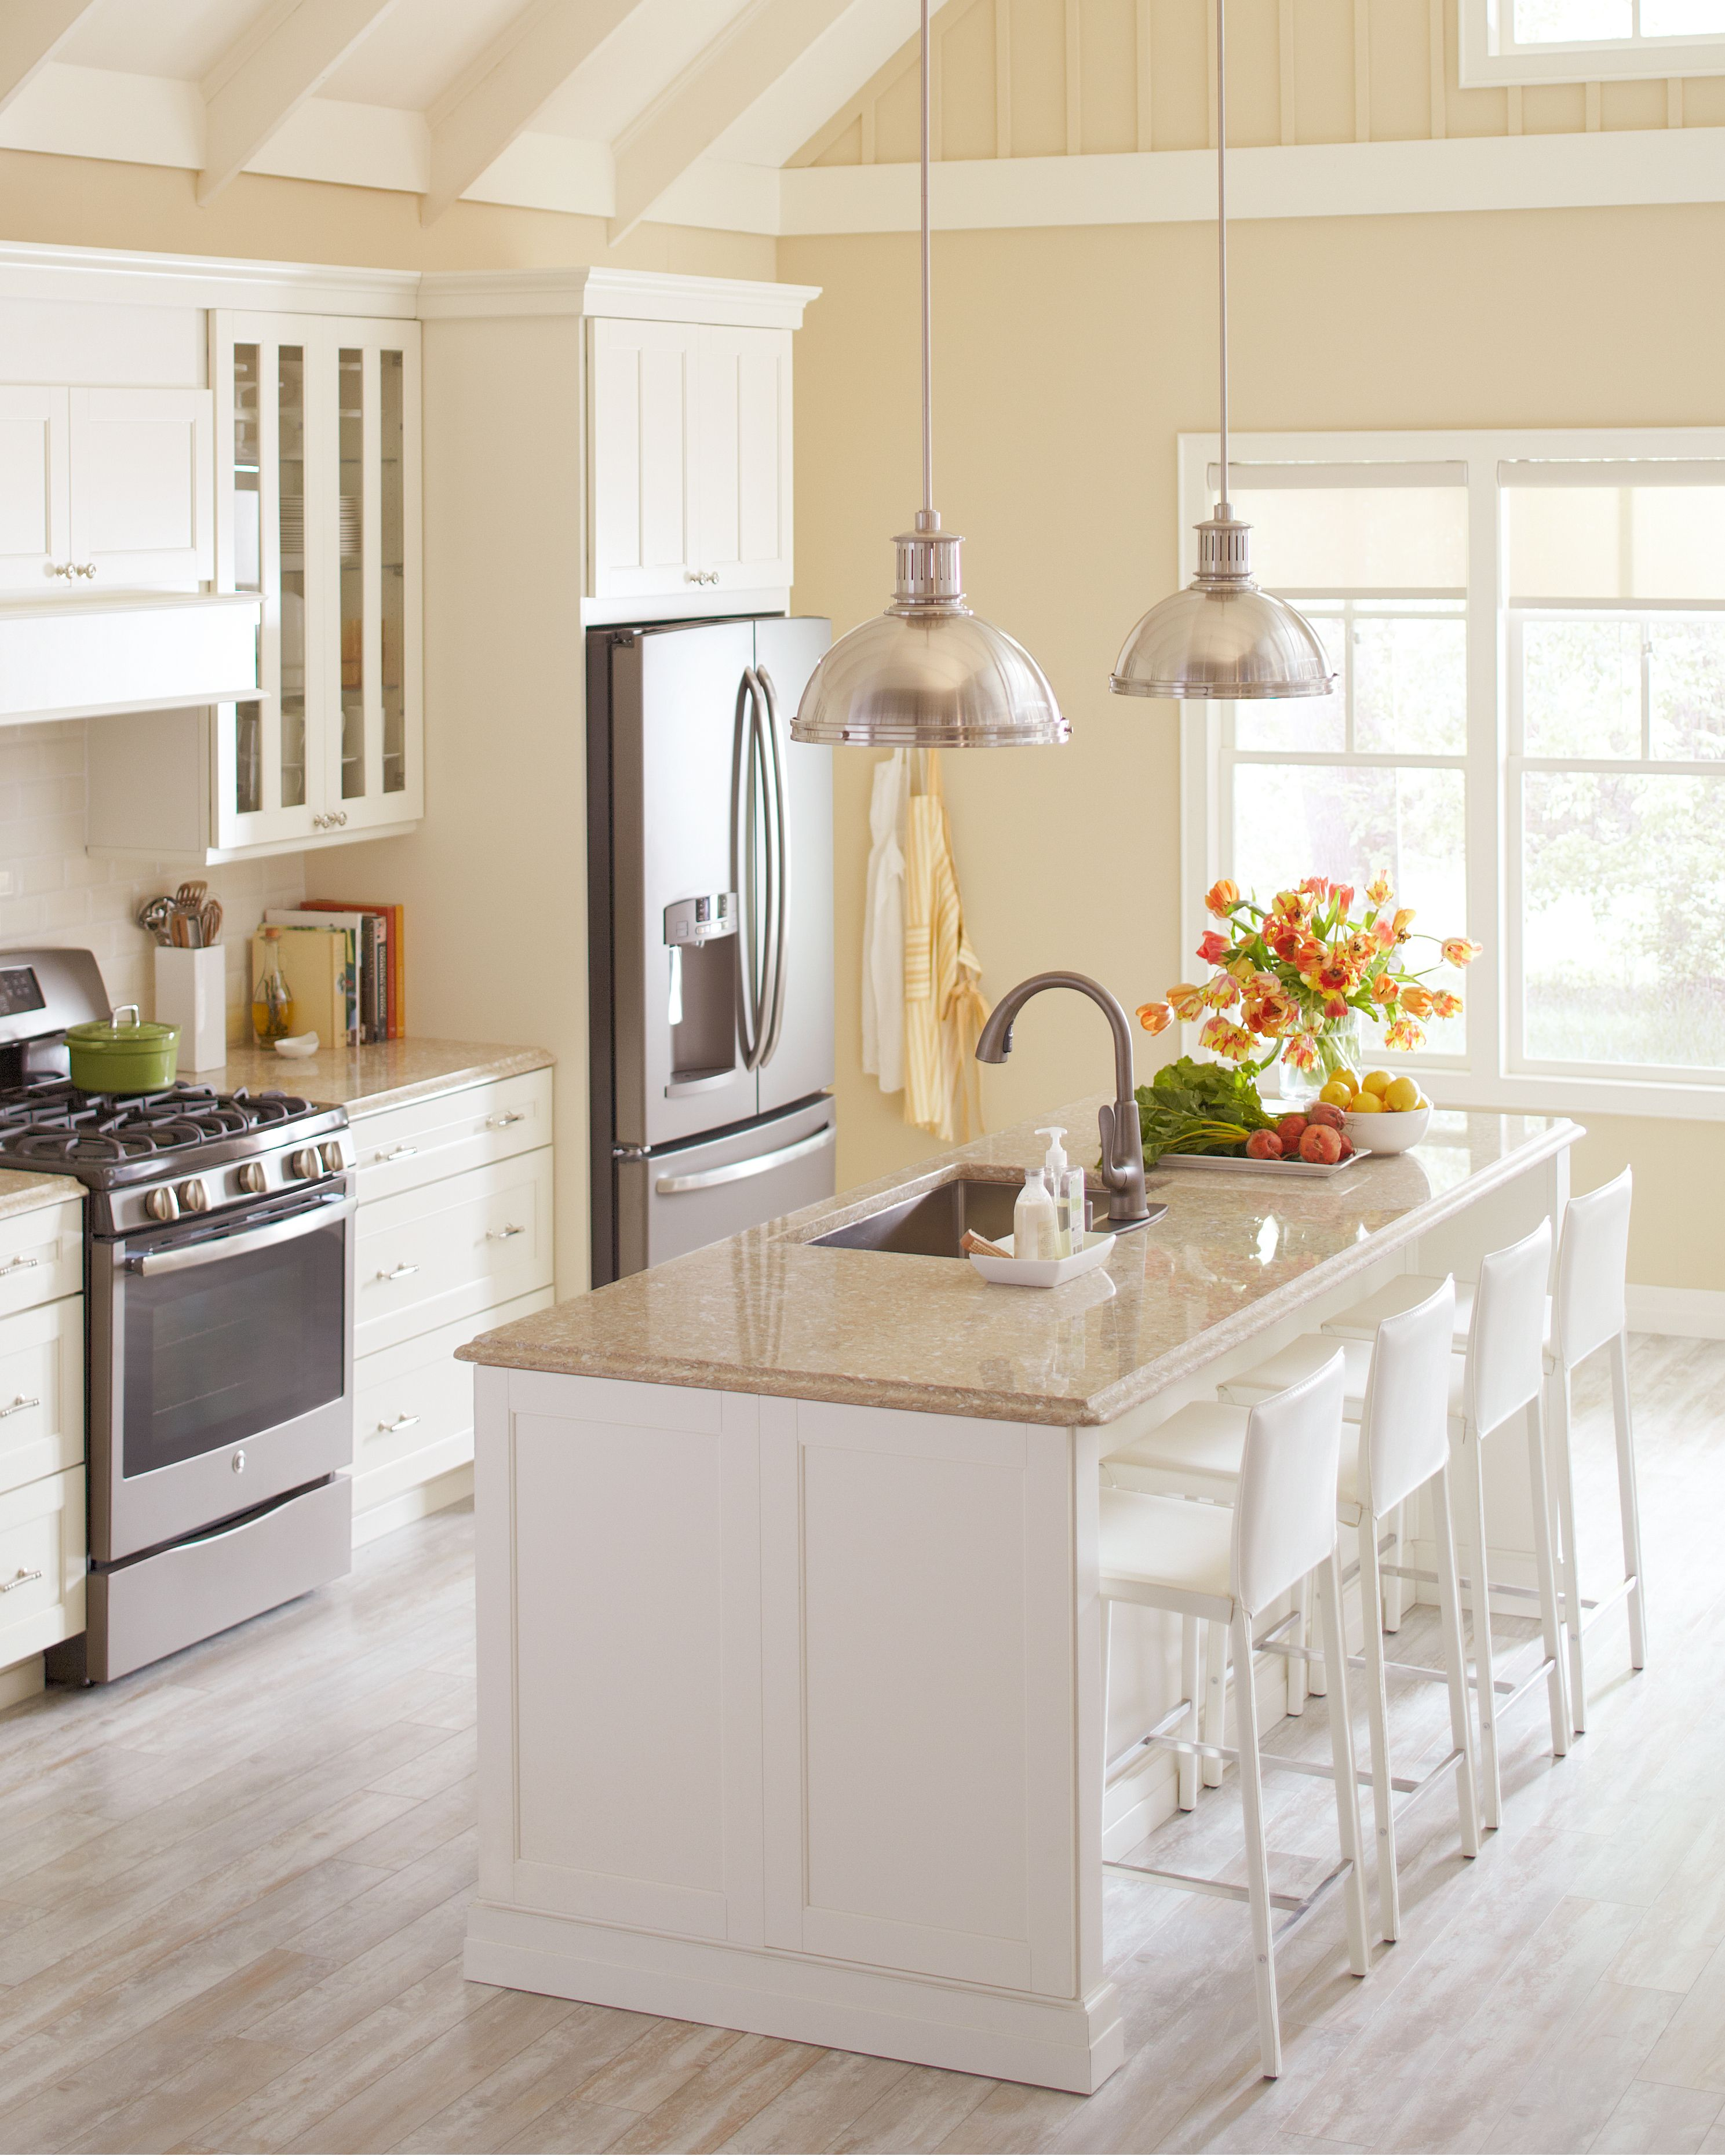 Martha S Top Kitchen Organizing Tips In 2020 Beige Kitchen Quartz Kitchen Countertops Corian Countertops